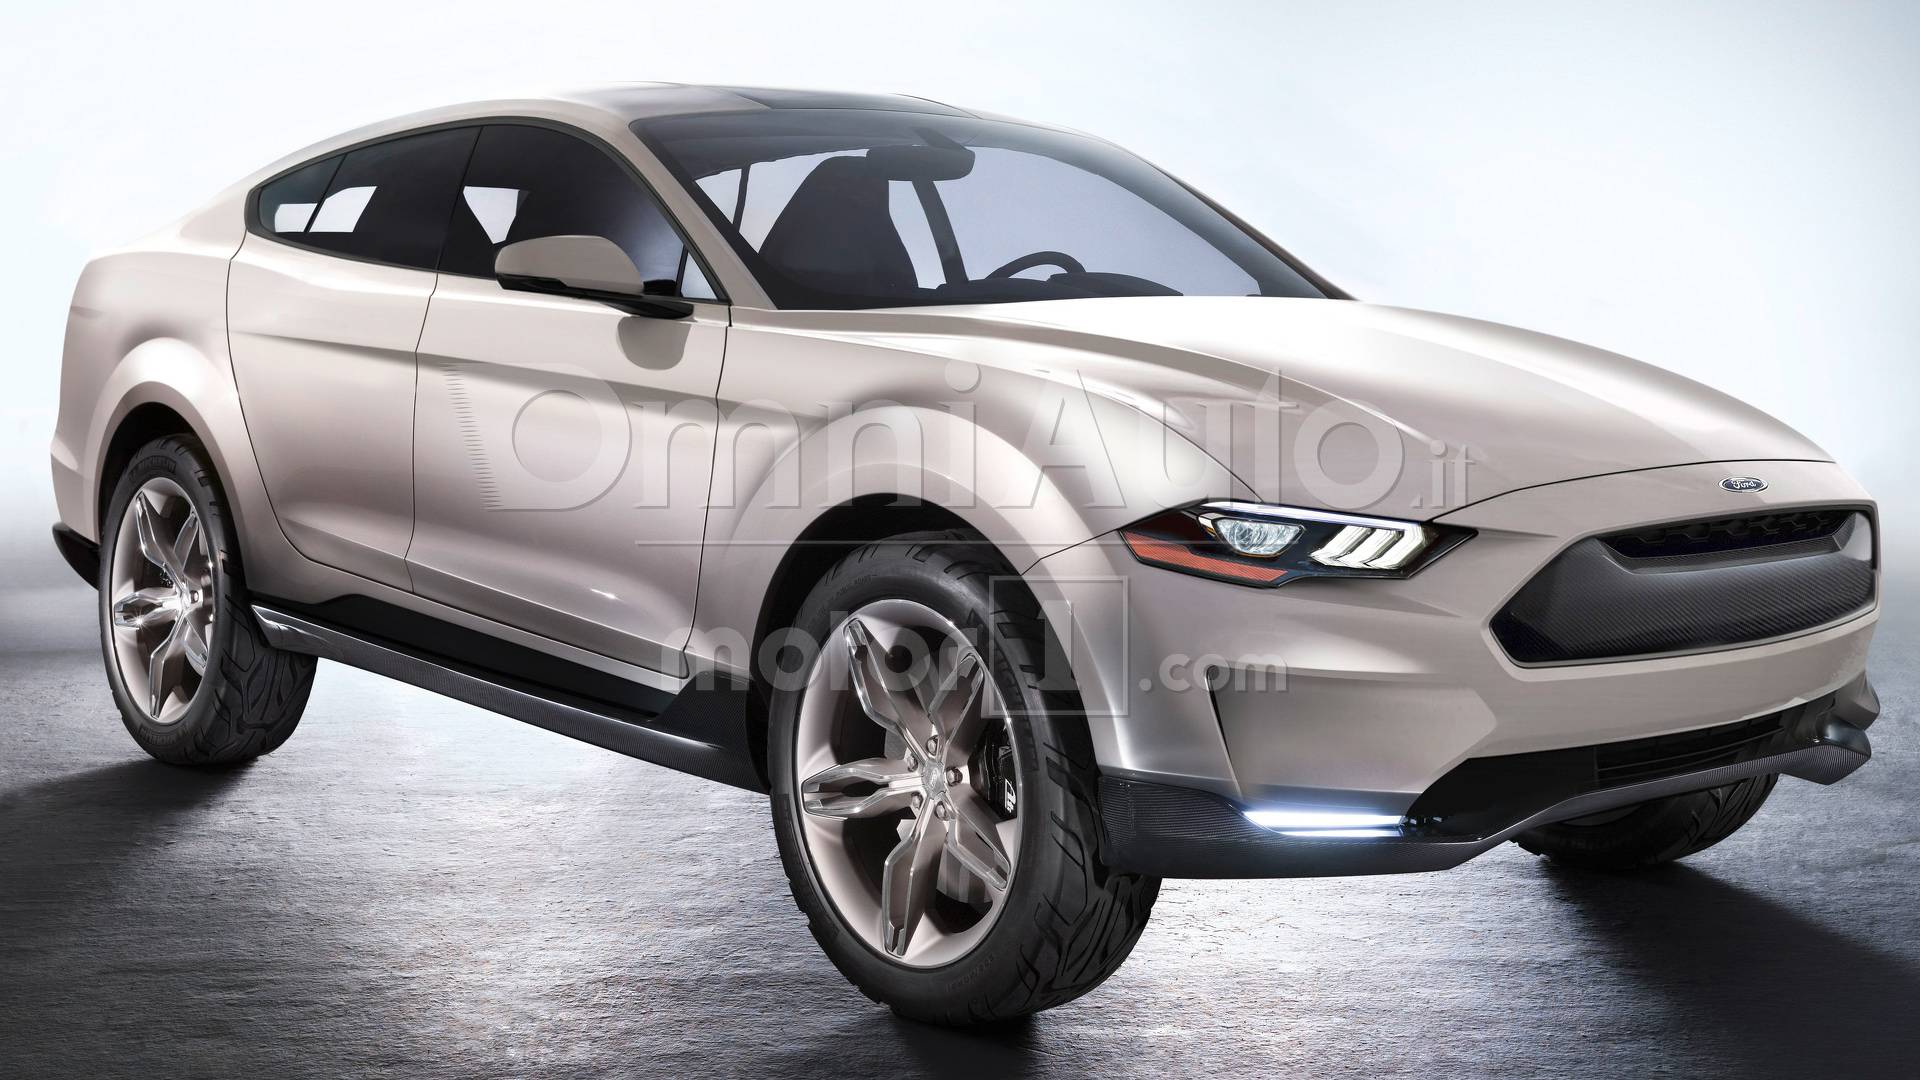 The U.S. automotive brand Ford announced its plans earlier this year to build an all-electric crossover named Ford Mach 1